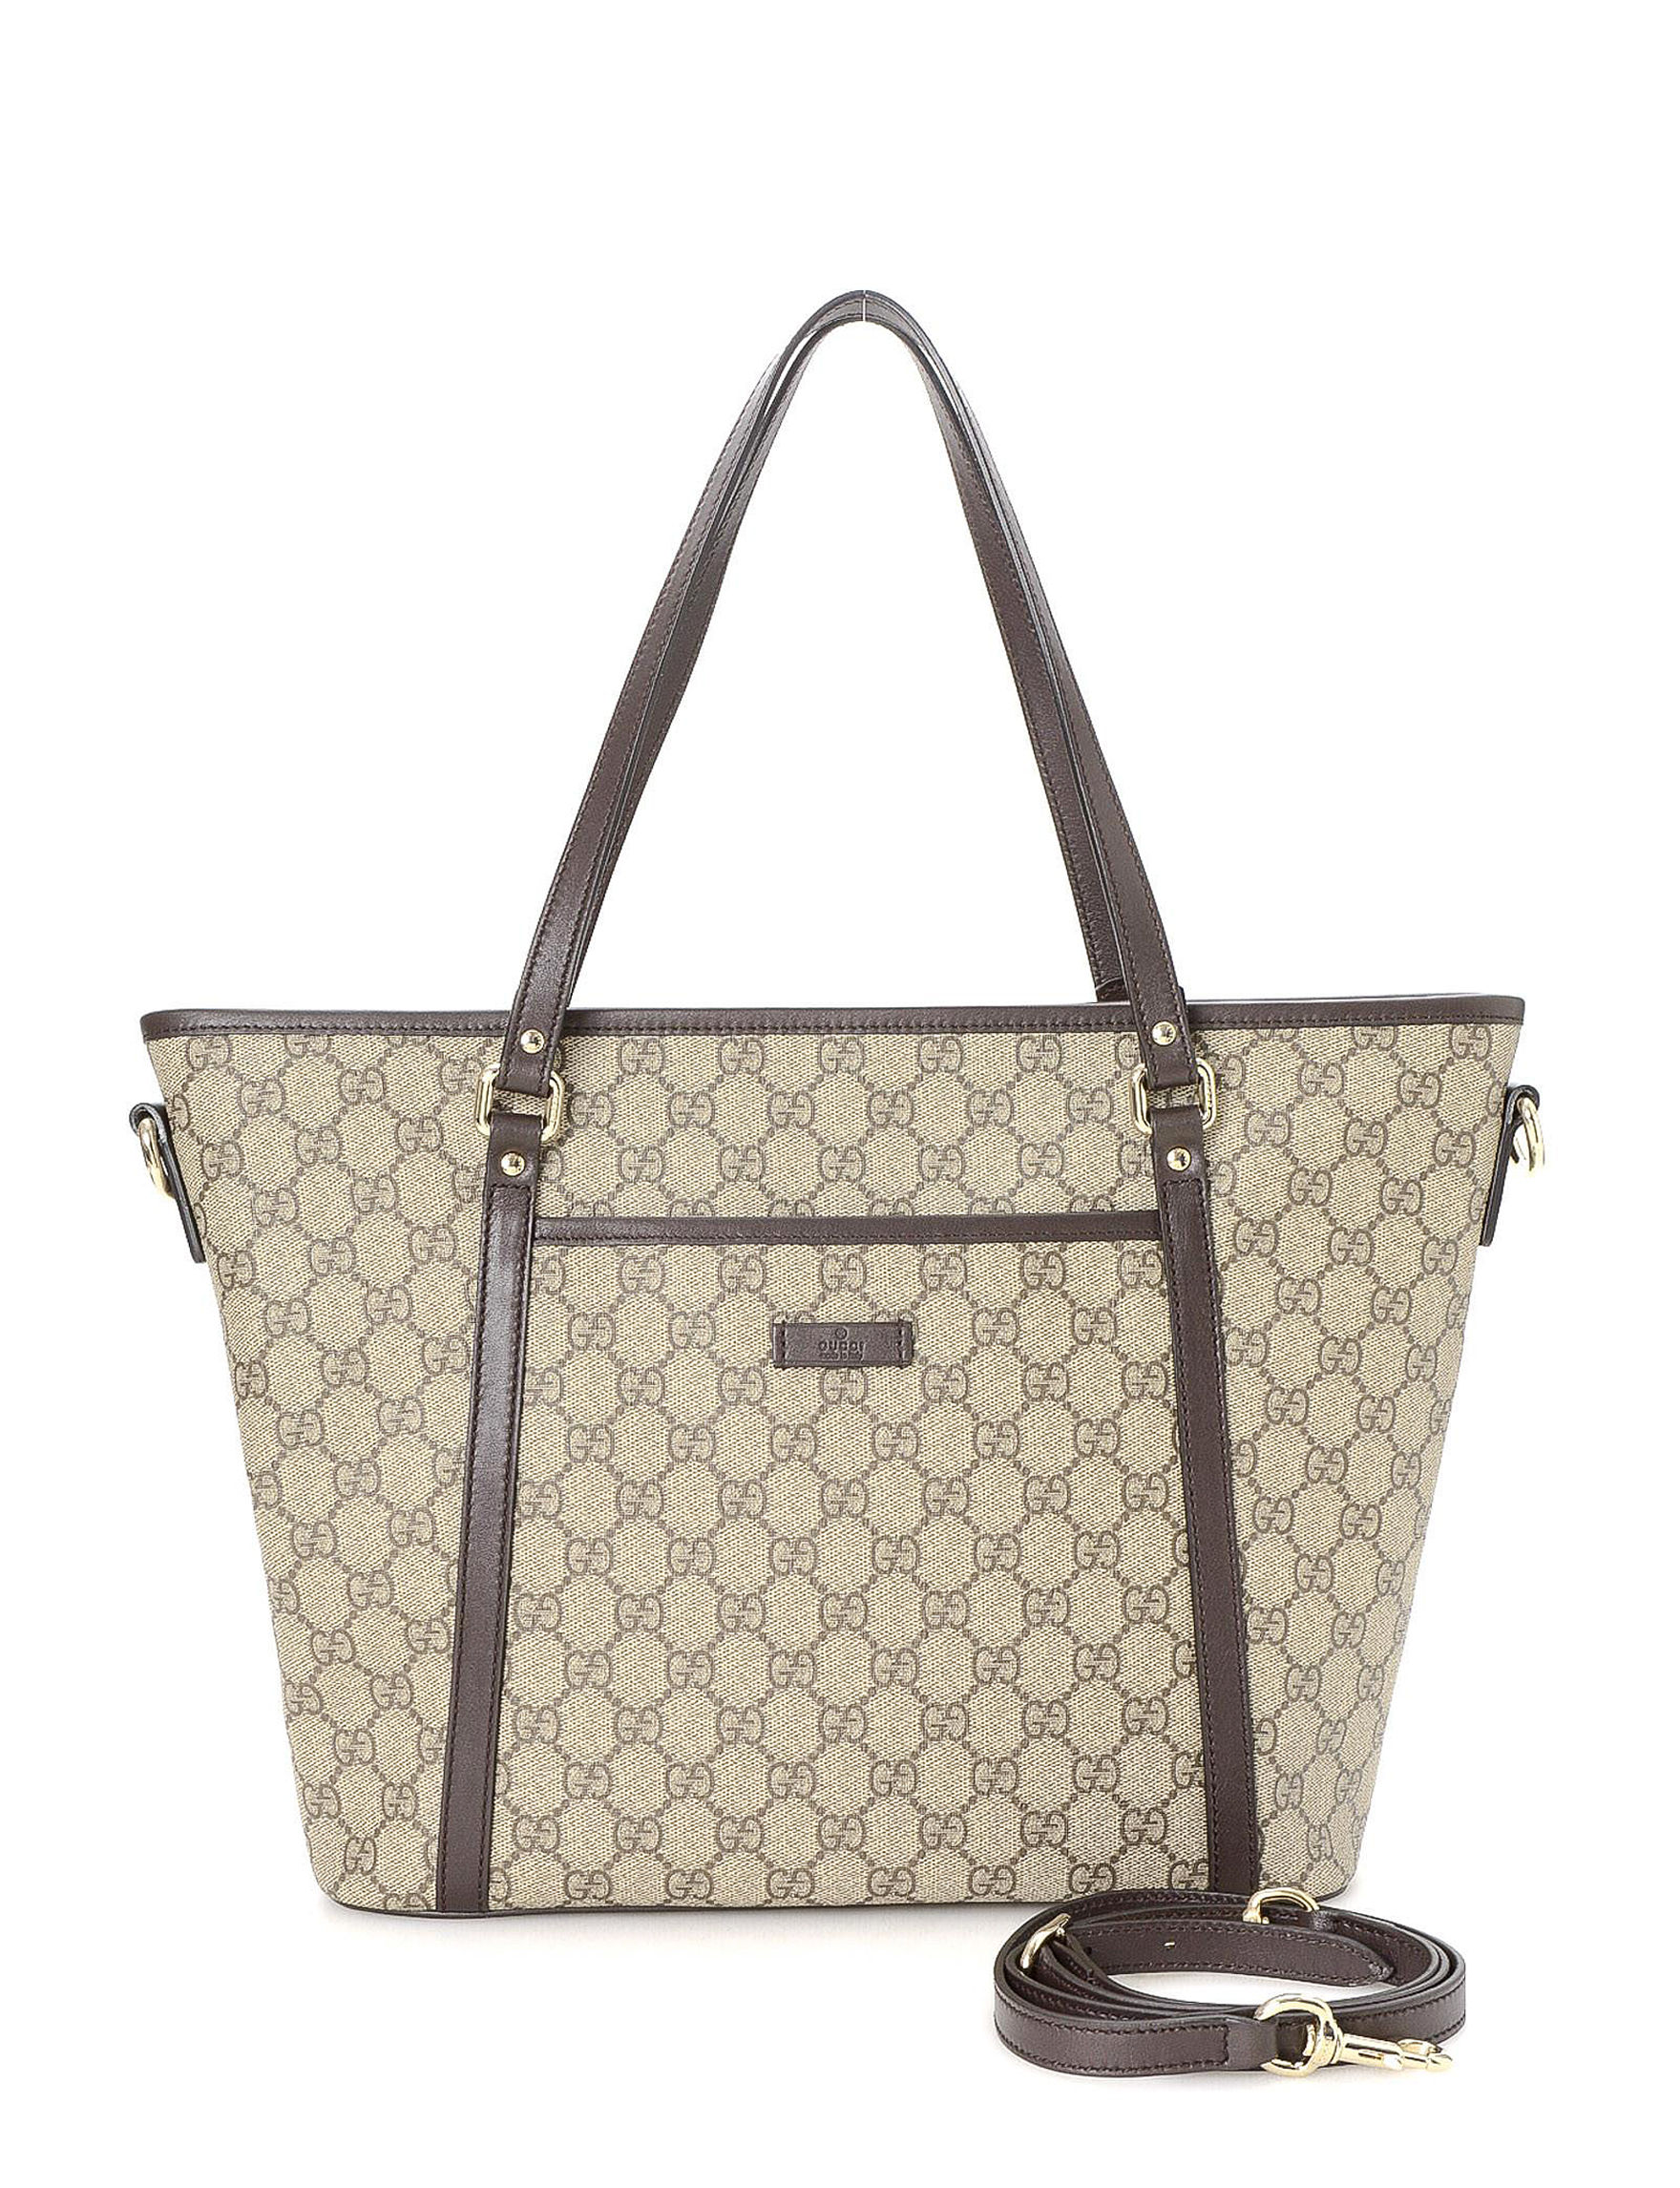 b58bedce3 Luxury Pre-Owned Gucci FF Supreme Two Way Tote - FINAL SALE ...